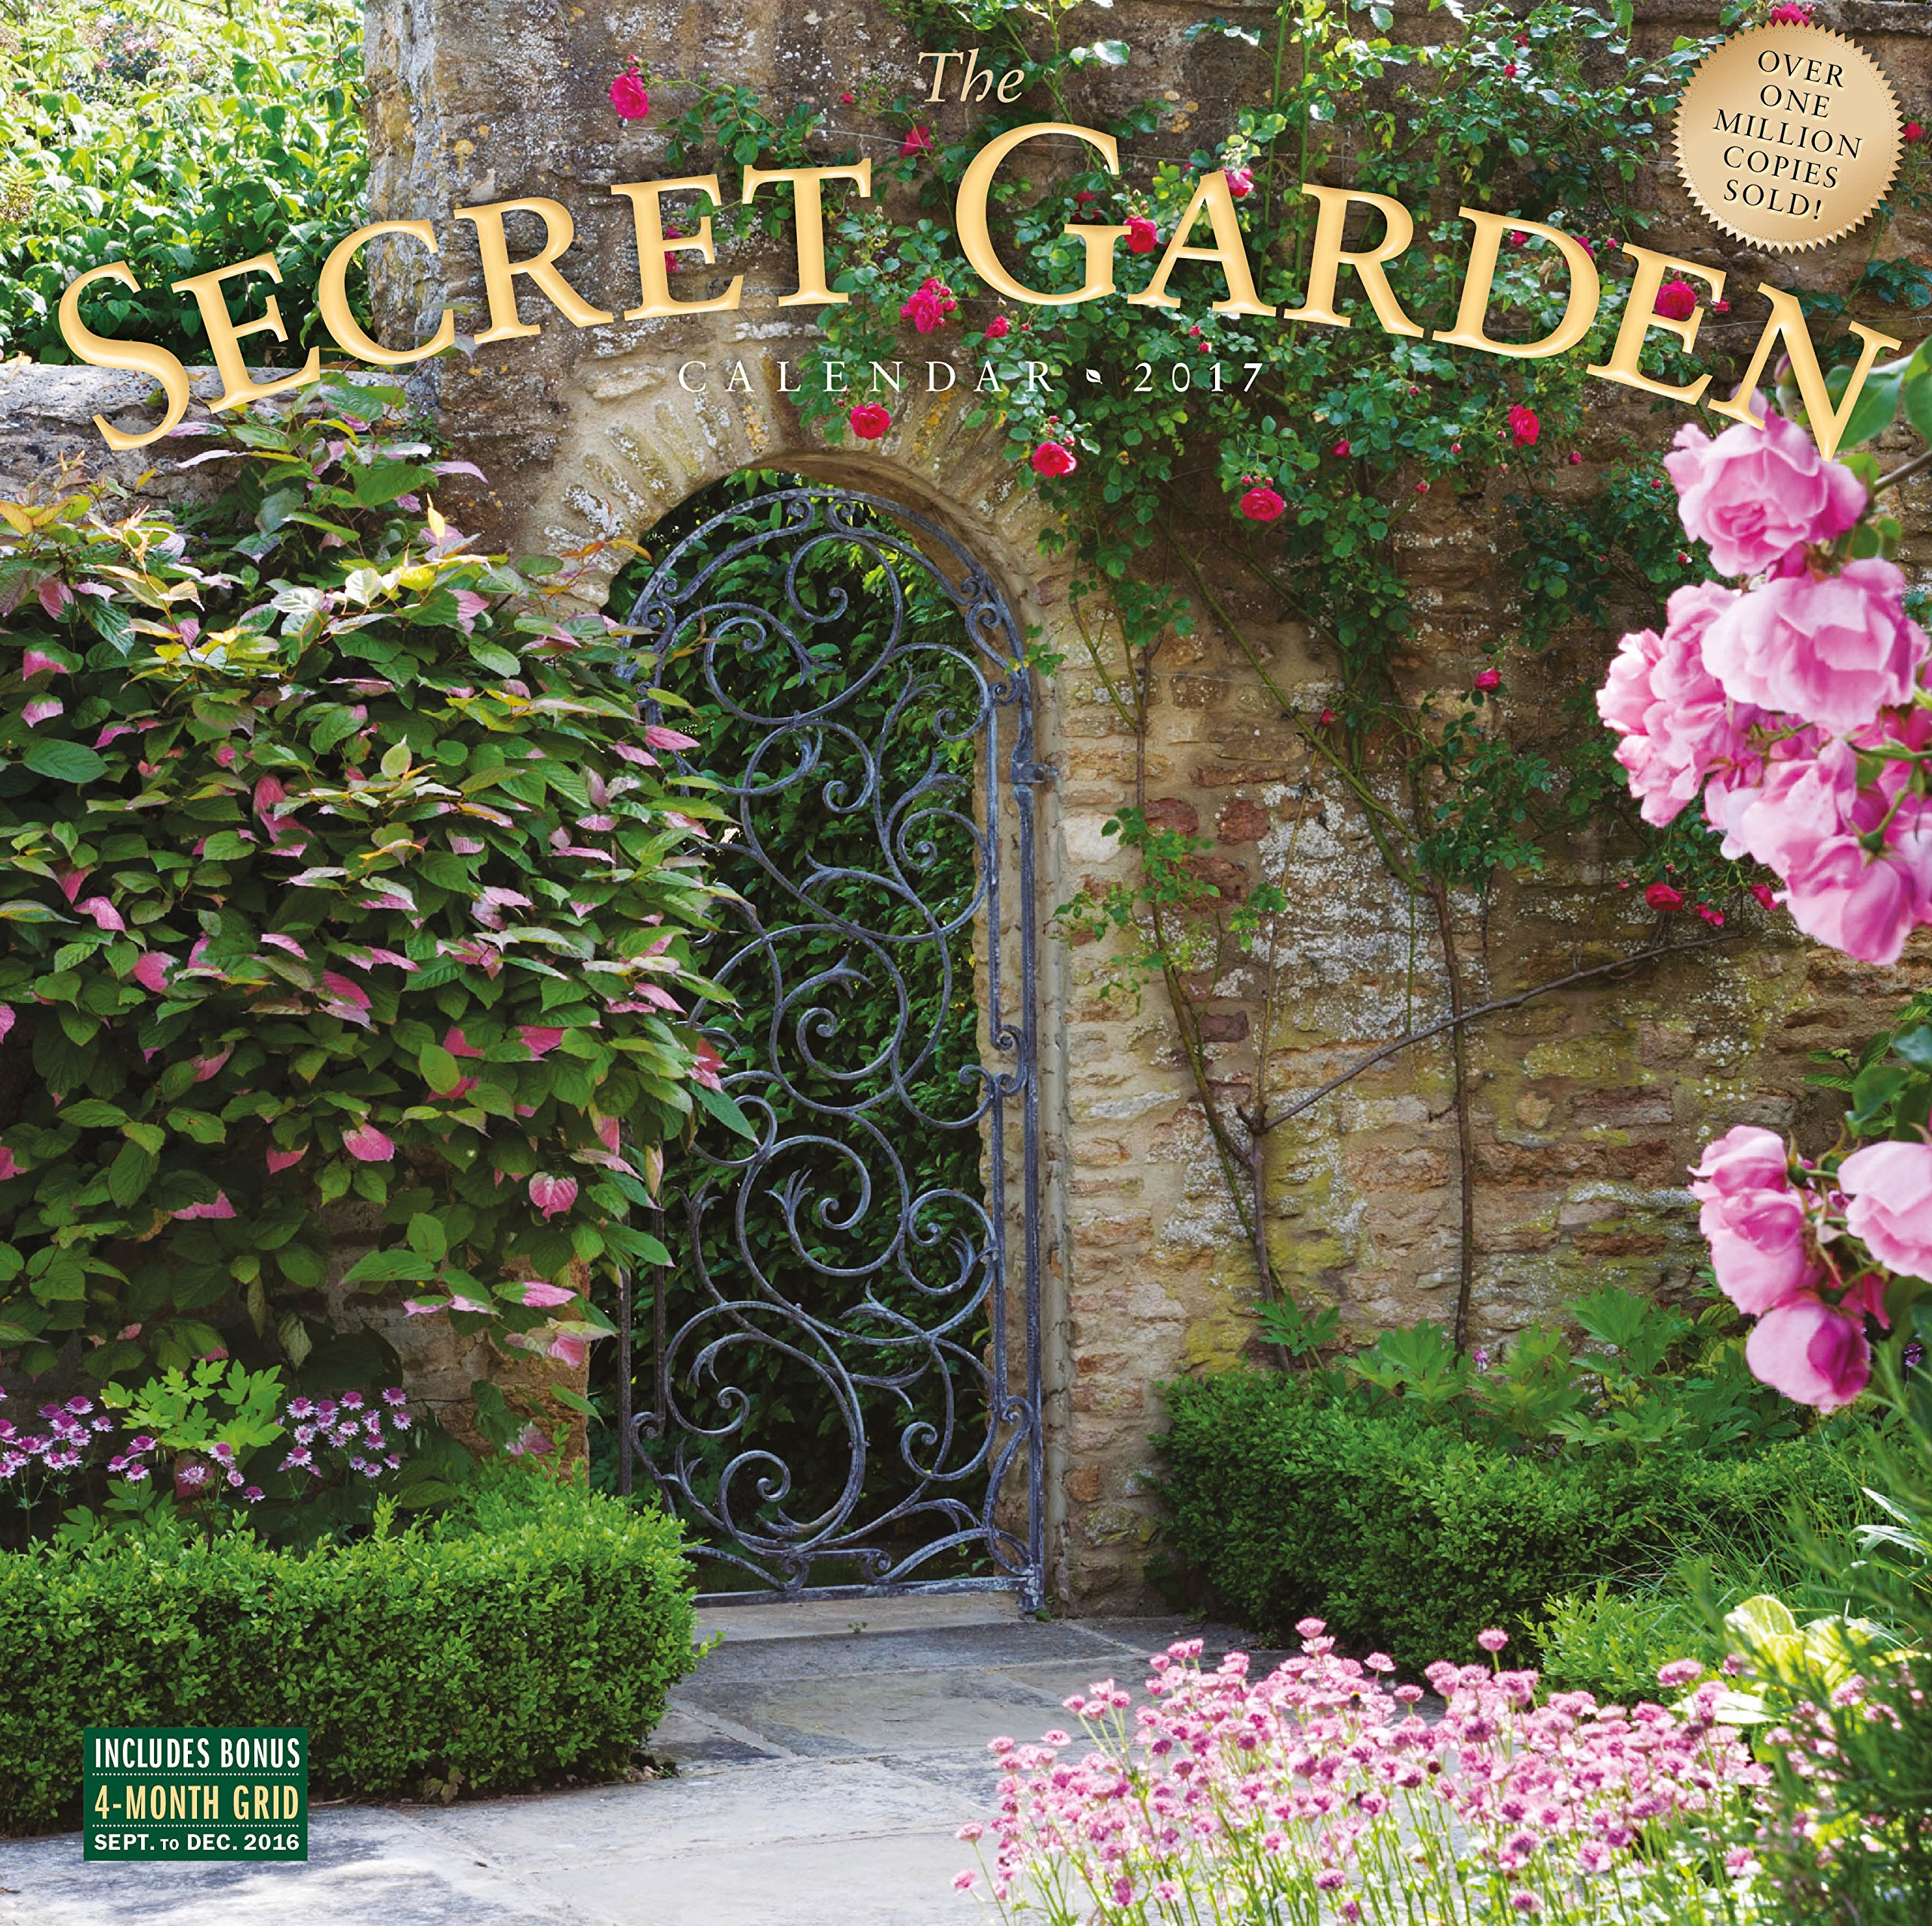 the secret garden wall calendar 2017 workman publishing 7432117350328 amazoncom books - Garden Wall